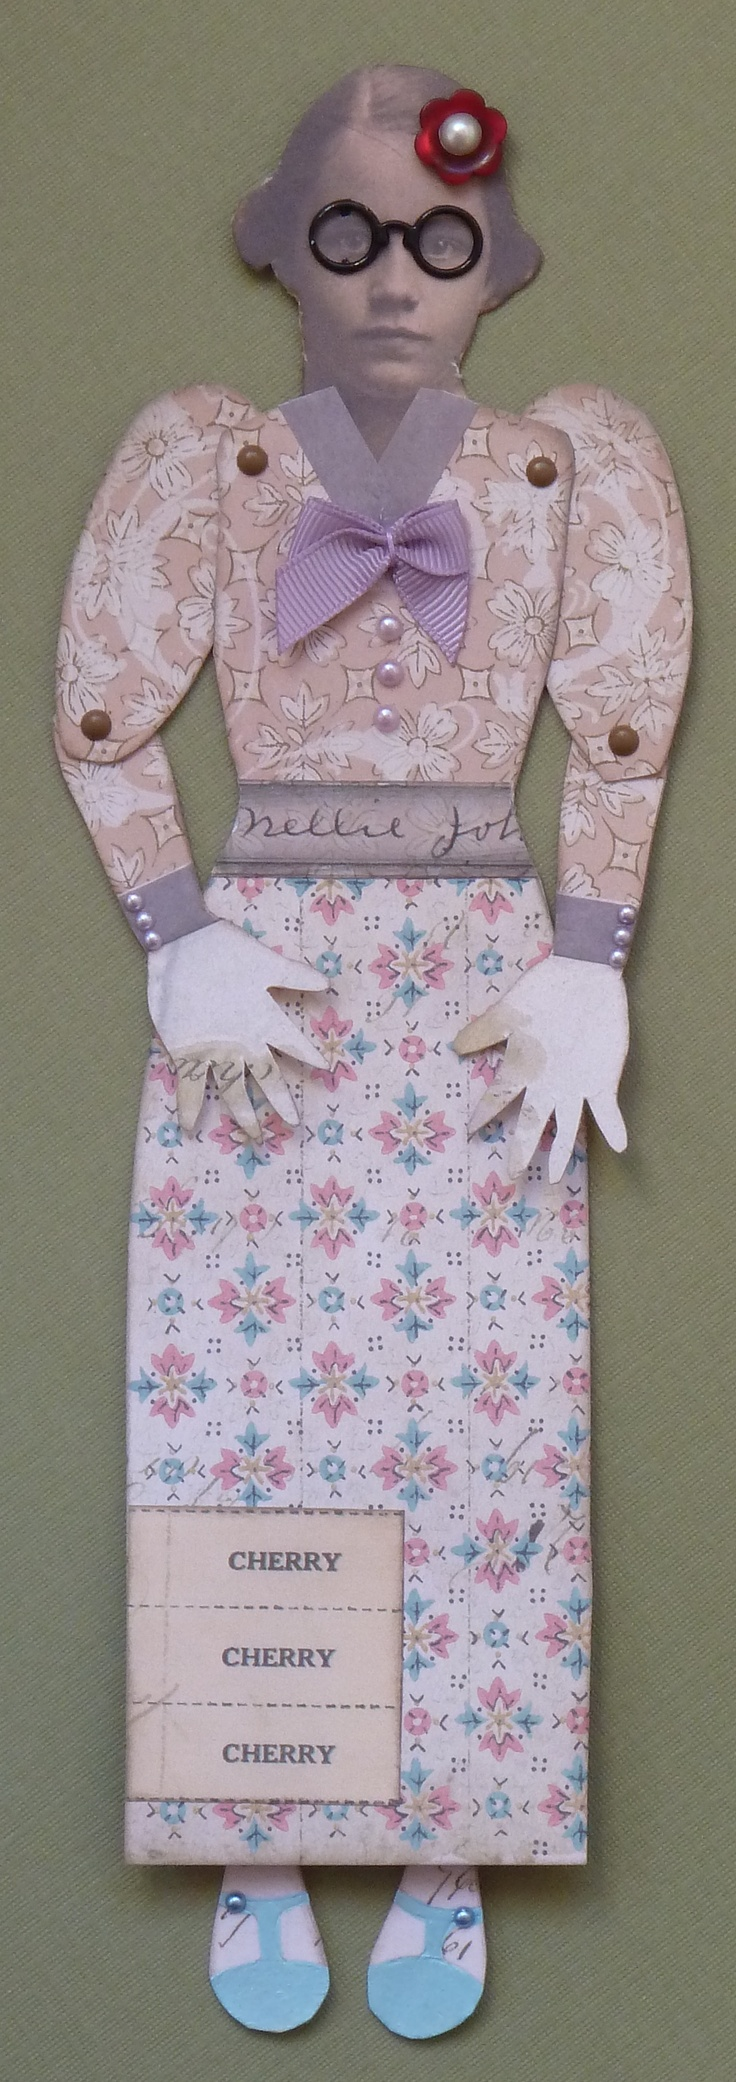 Nellie was made using The Artistic stamper art doll stamps and 7Gypsies Trousseau collection papers